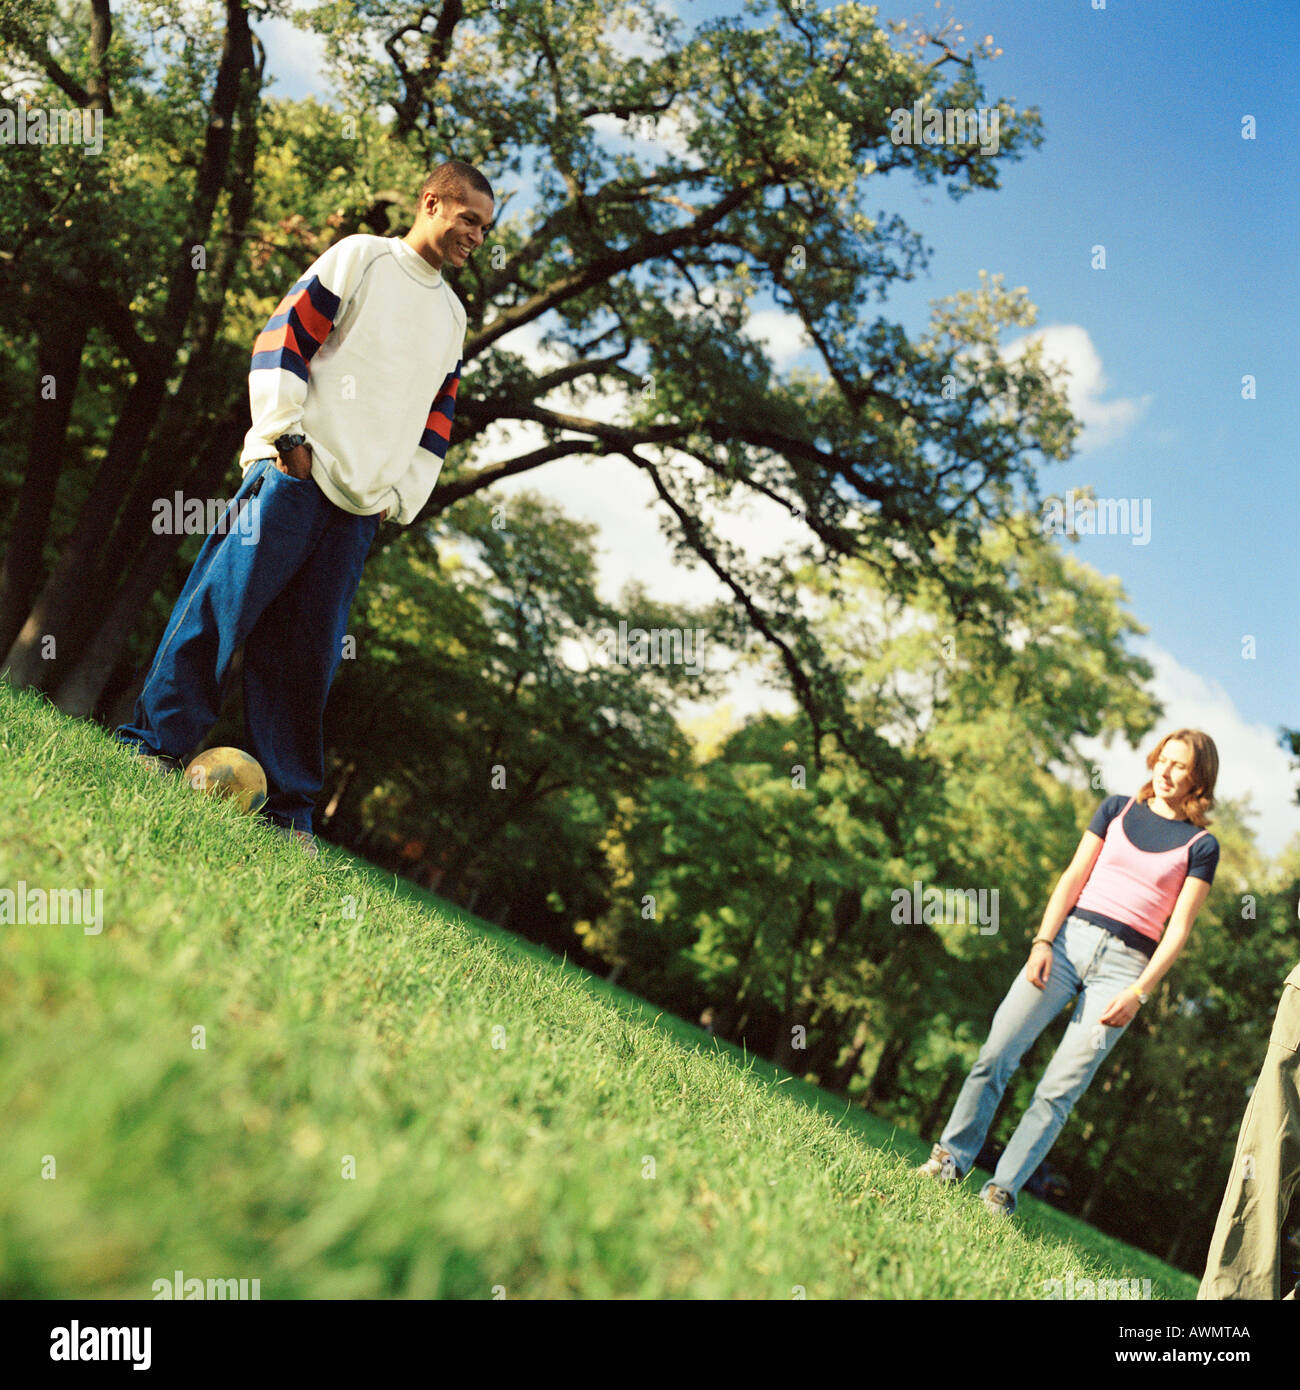 Young man standing on grass with soccer ball, young woman looking at him, low angle view - Stock Image